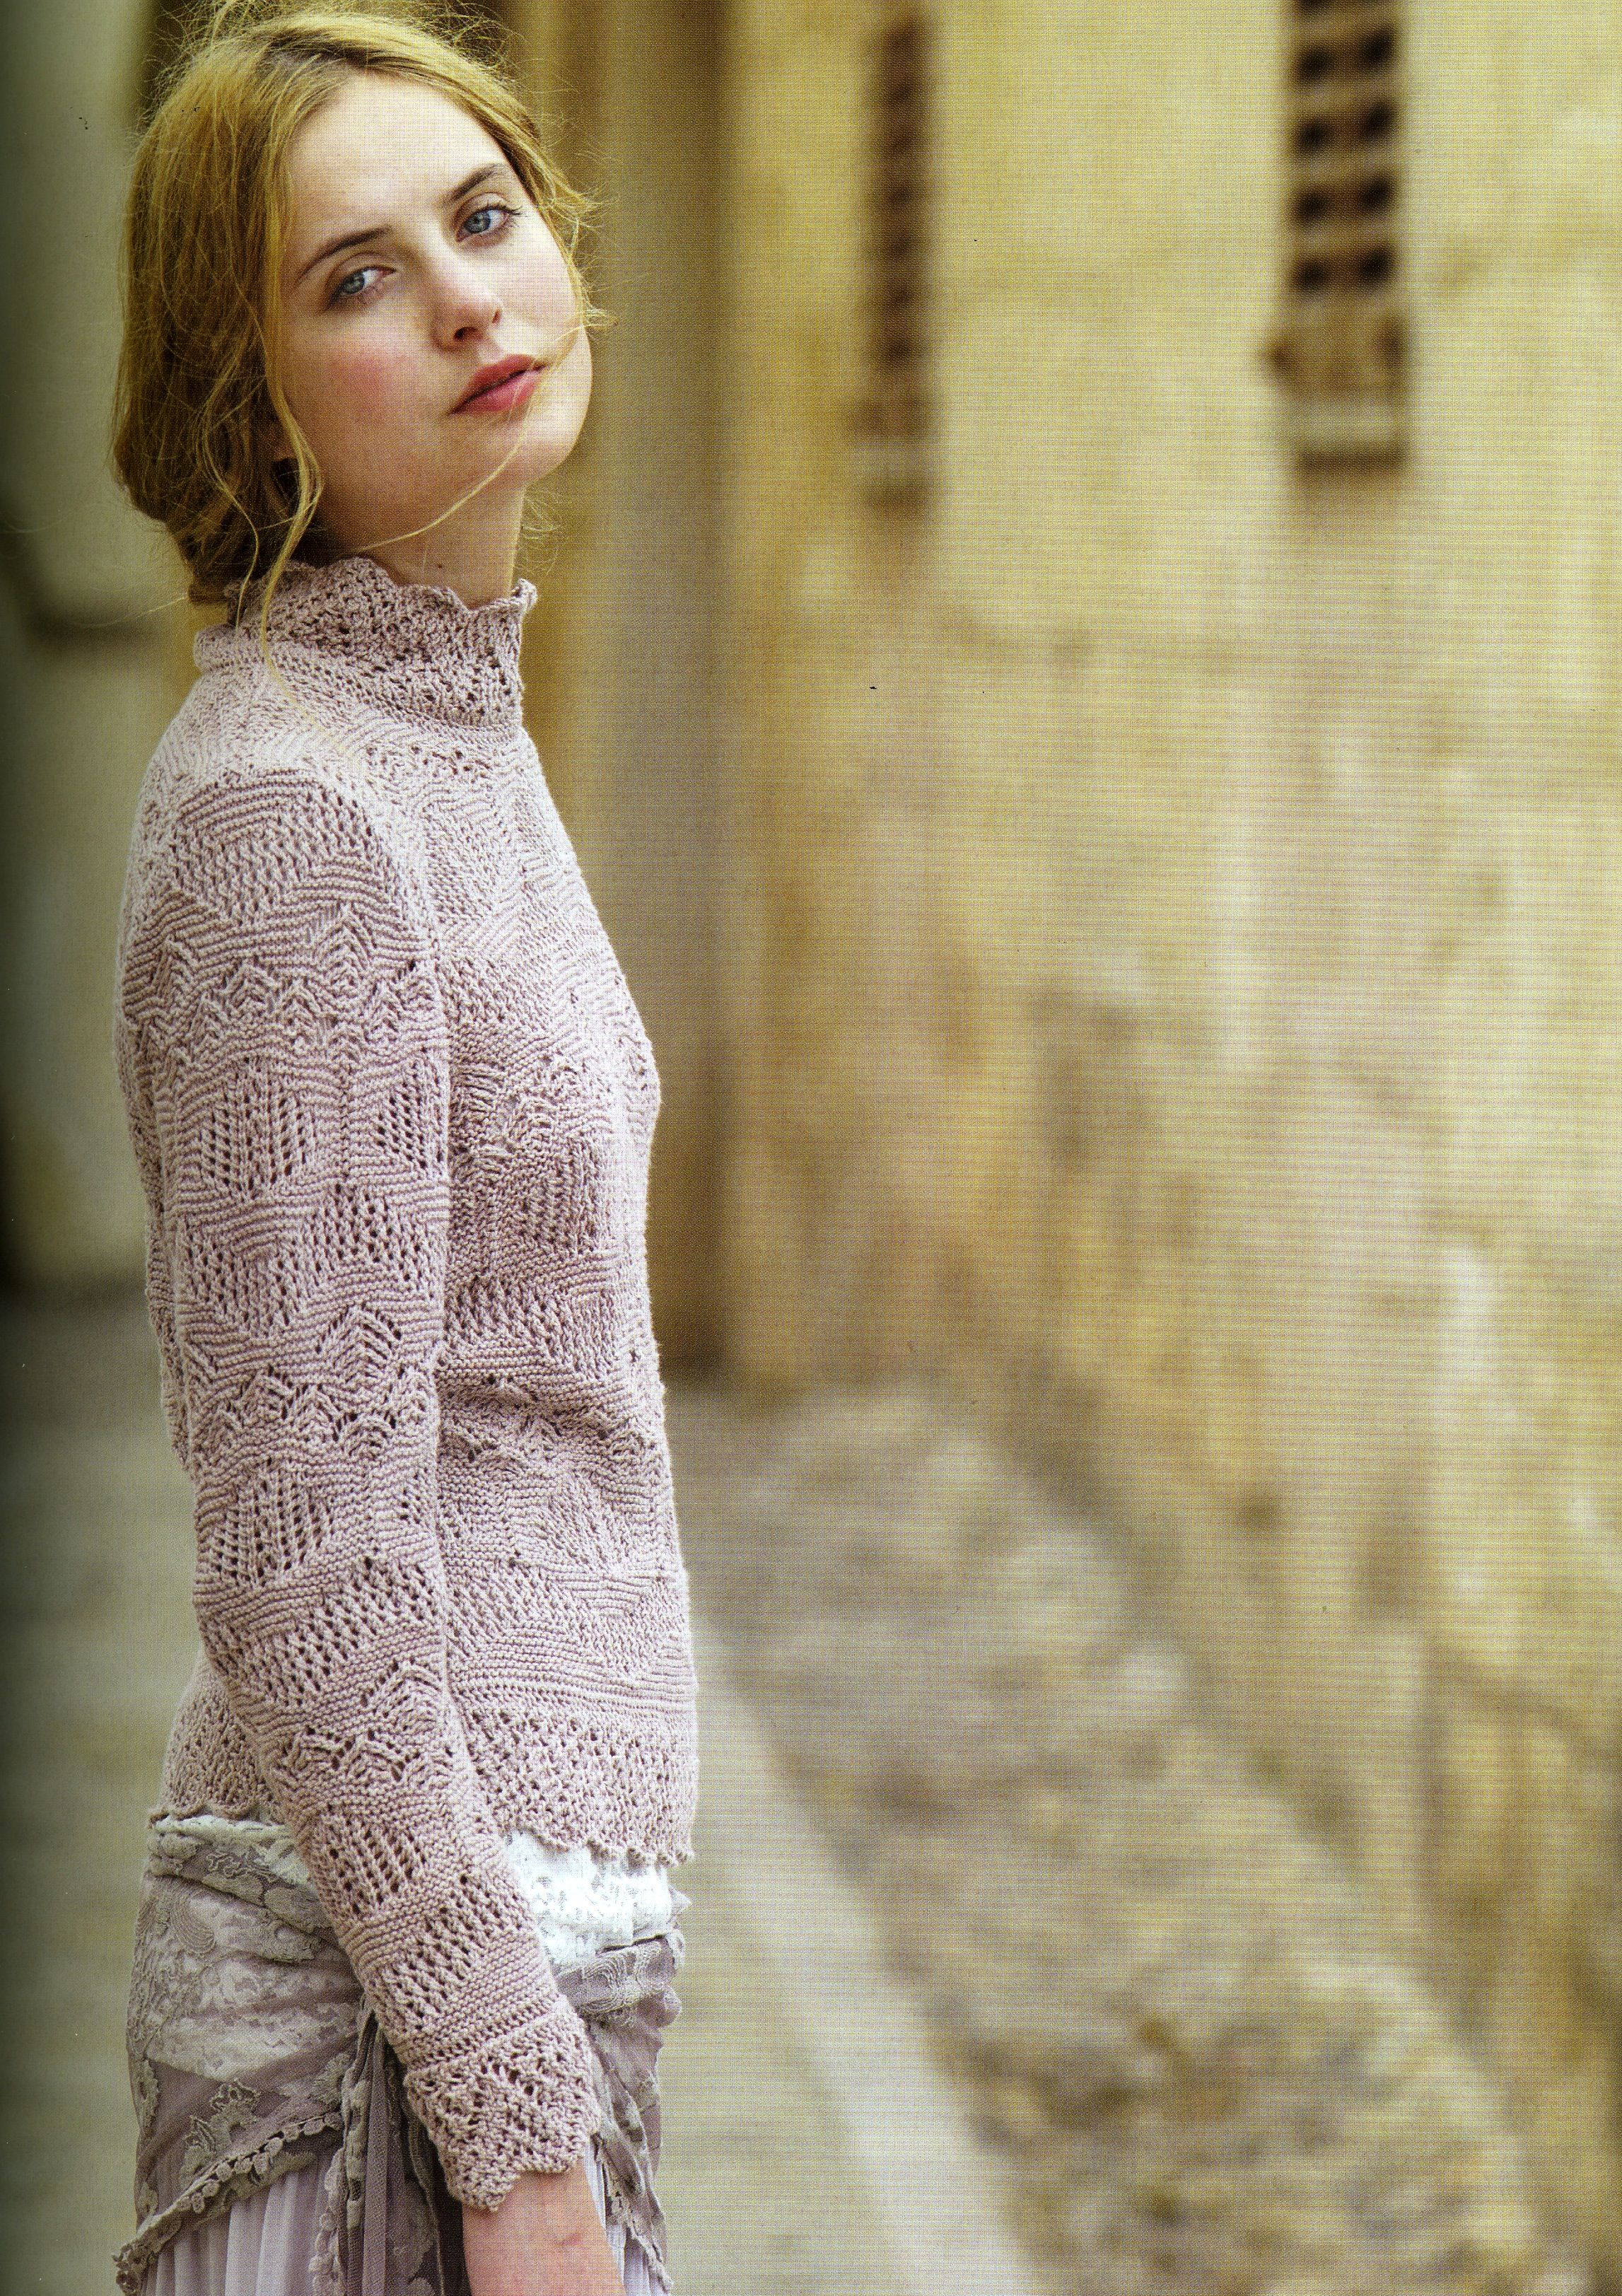 daydream sweater pattern knitted with rowan organic cotton 4ply